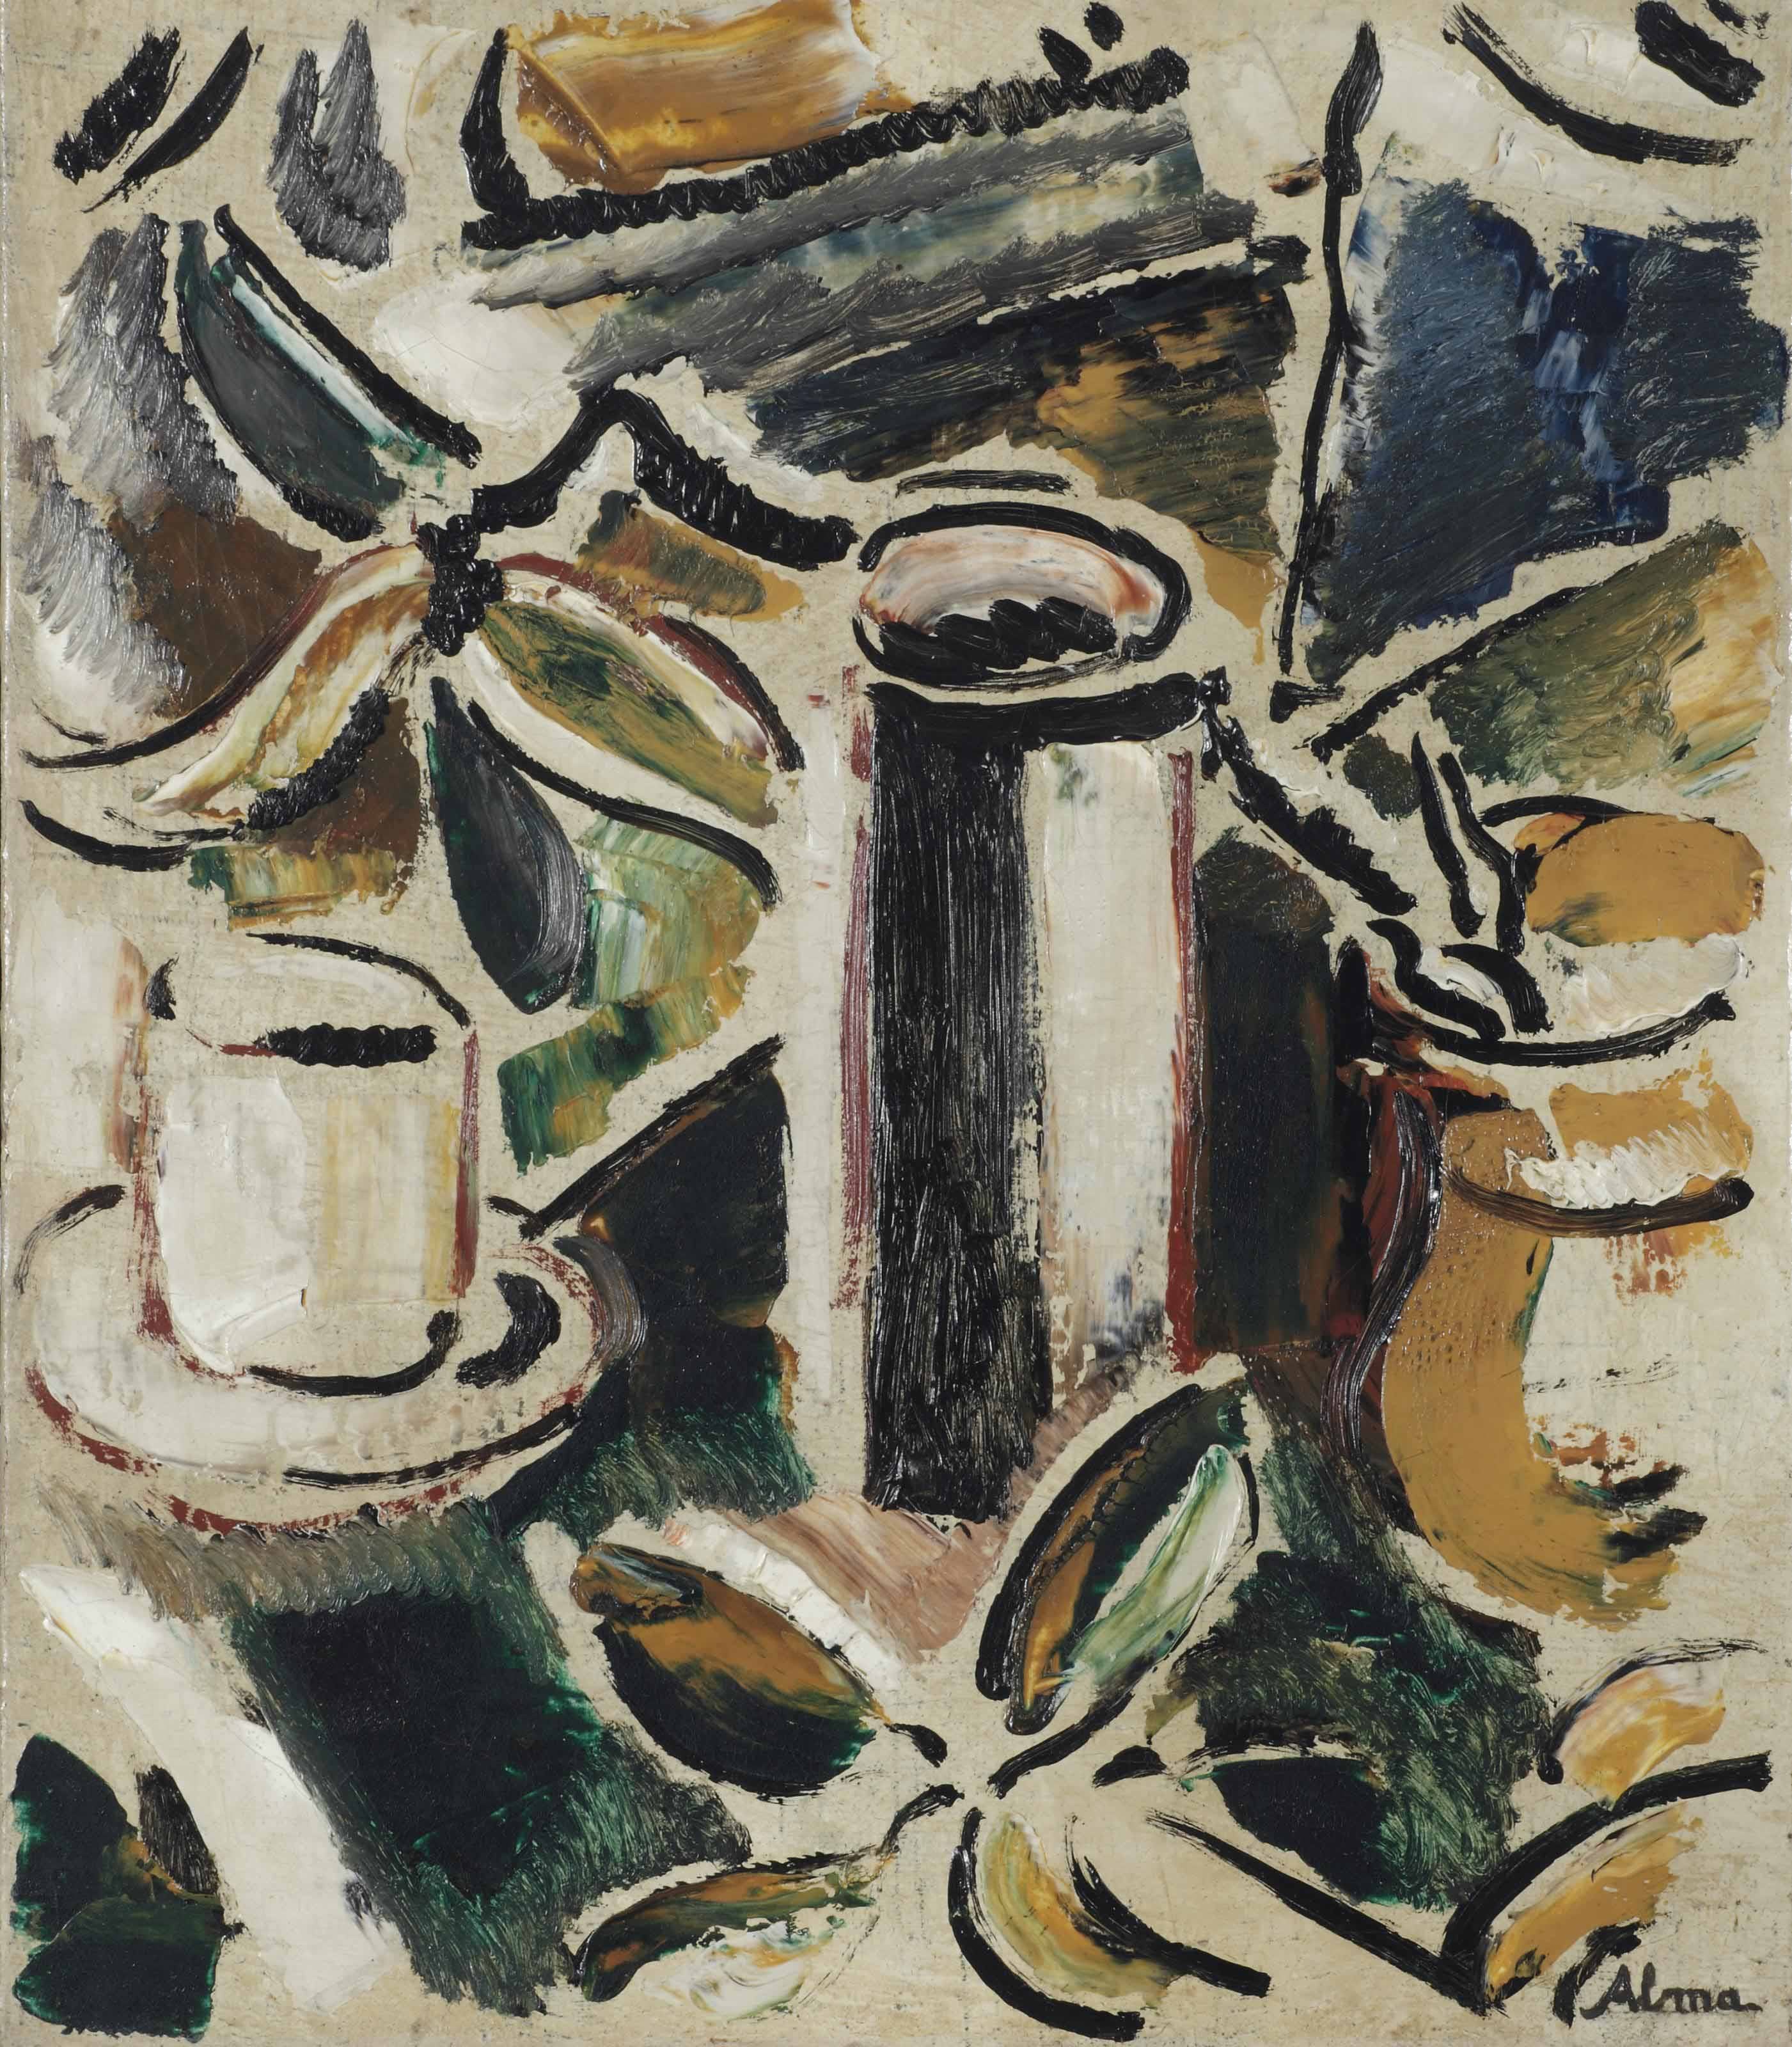 A still life with a cup and jars